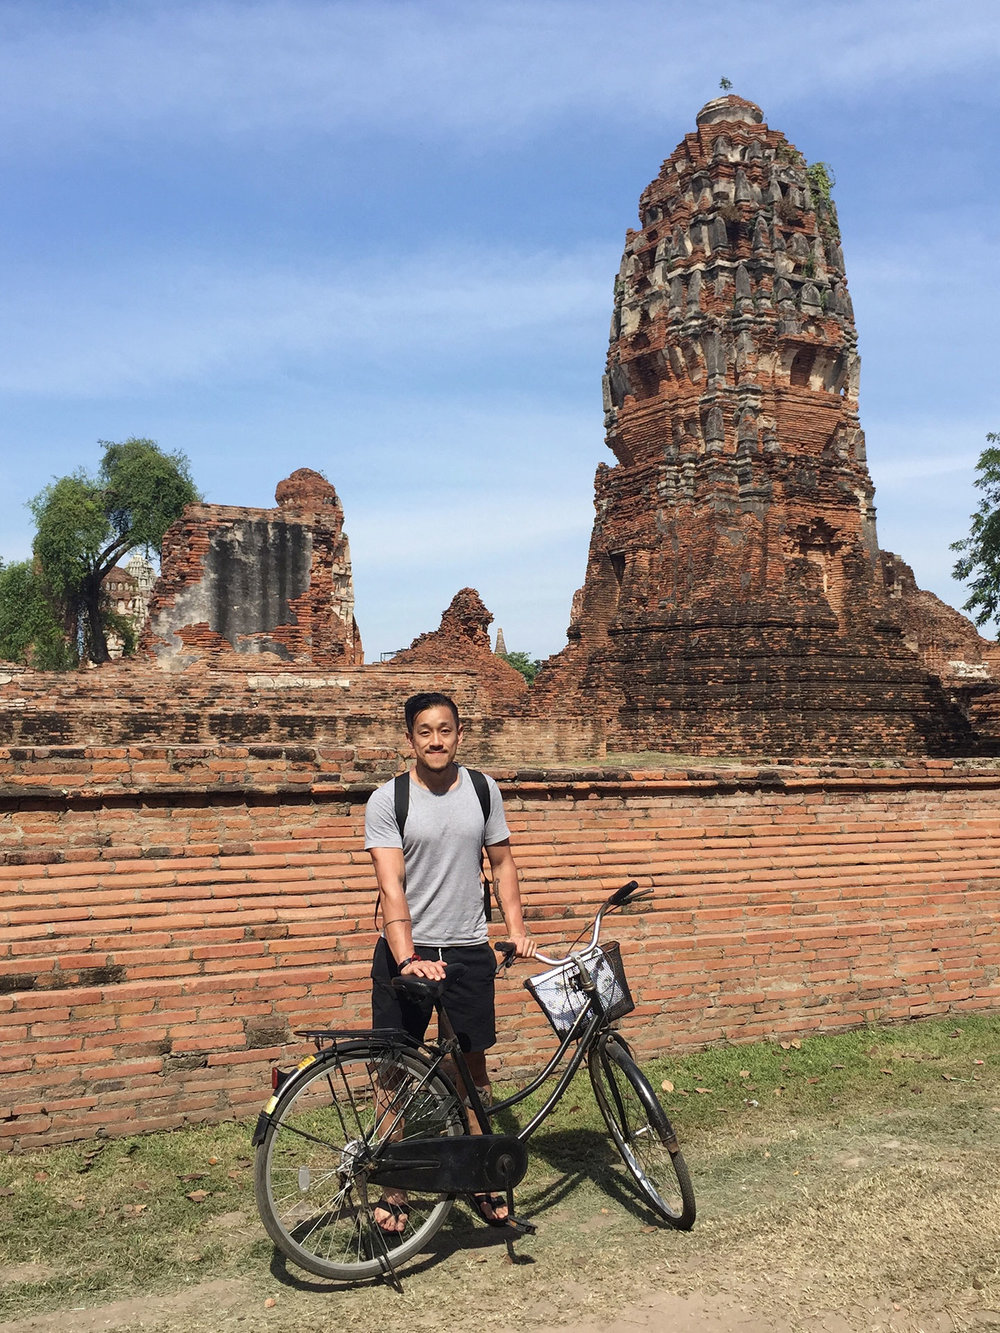 RENT A BIKE:   Once you're in Ayutthaya, renting a bike is a fun way to go from site to site. There are so many temples and ruins to see!